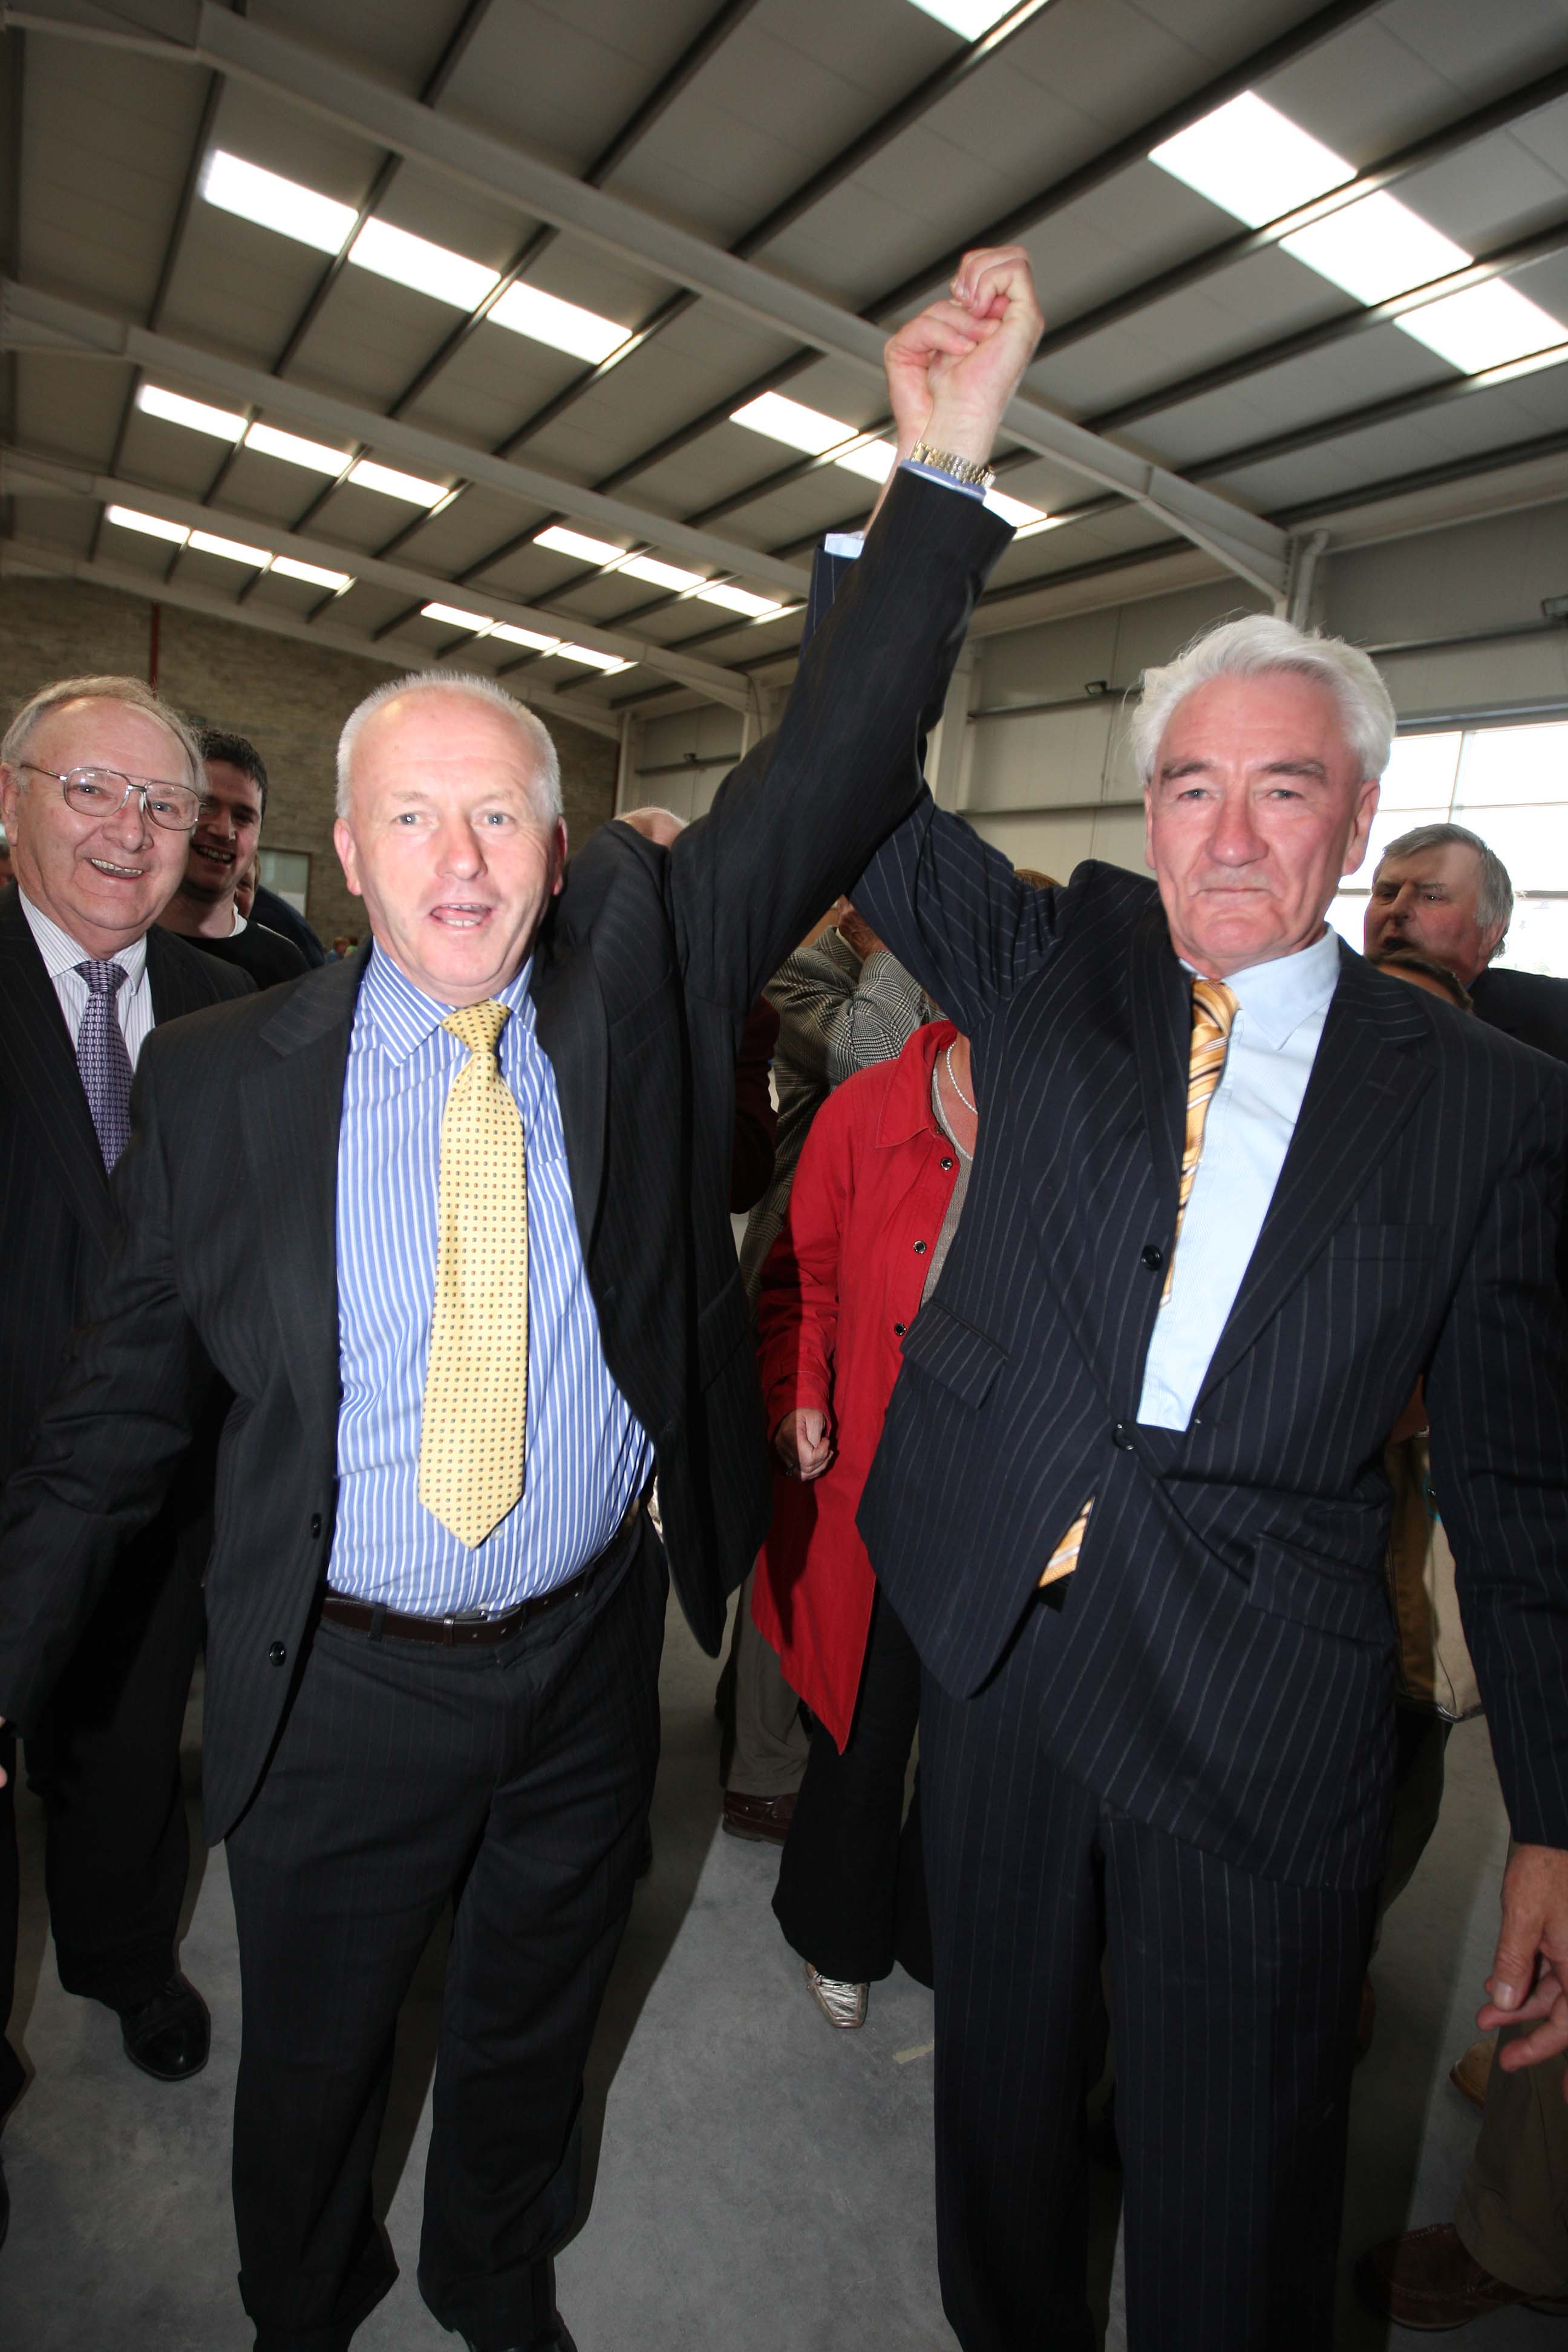 Fine Gael colleagues Tom Mulhall and James Deegan celebrate at the 2009 Local Election count